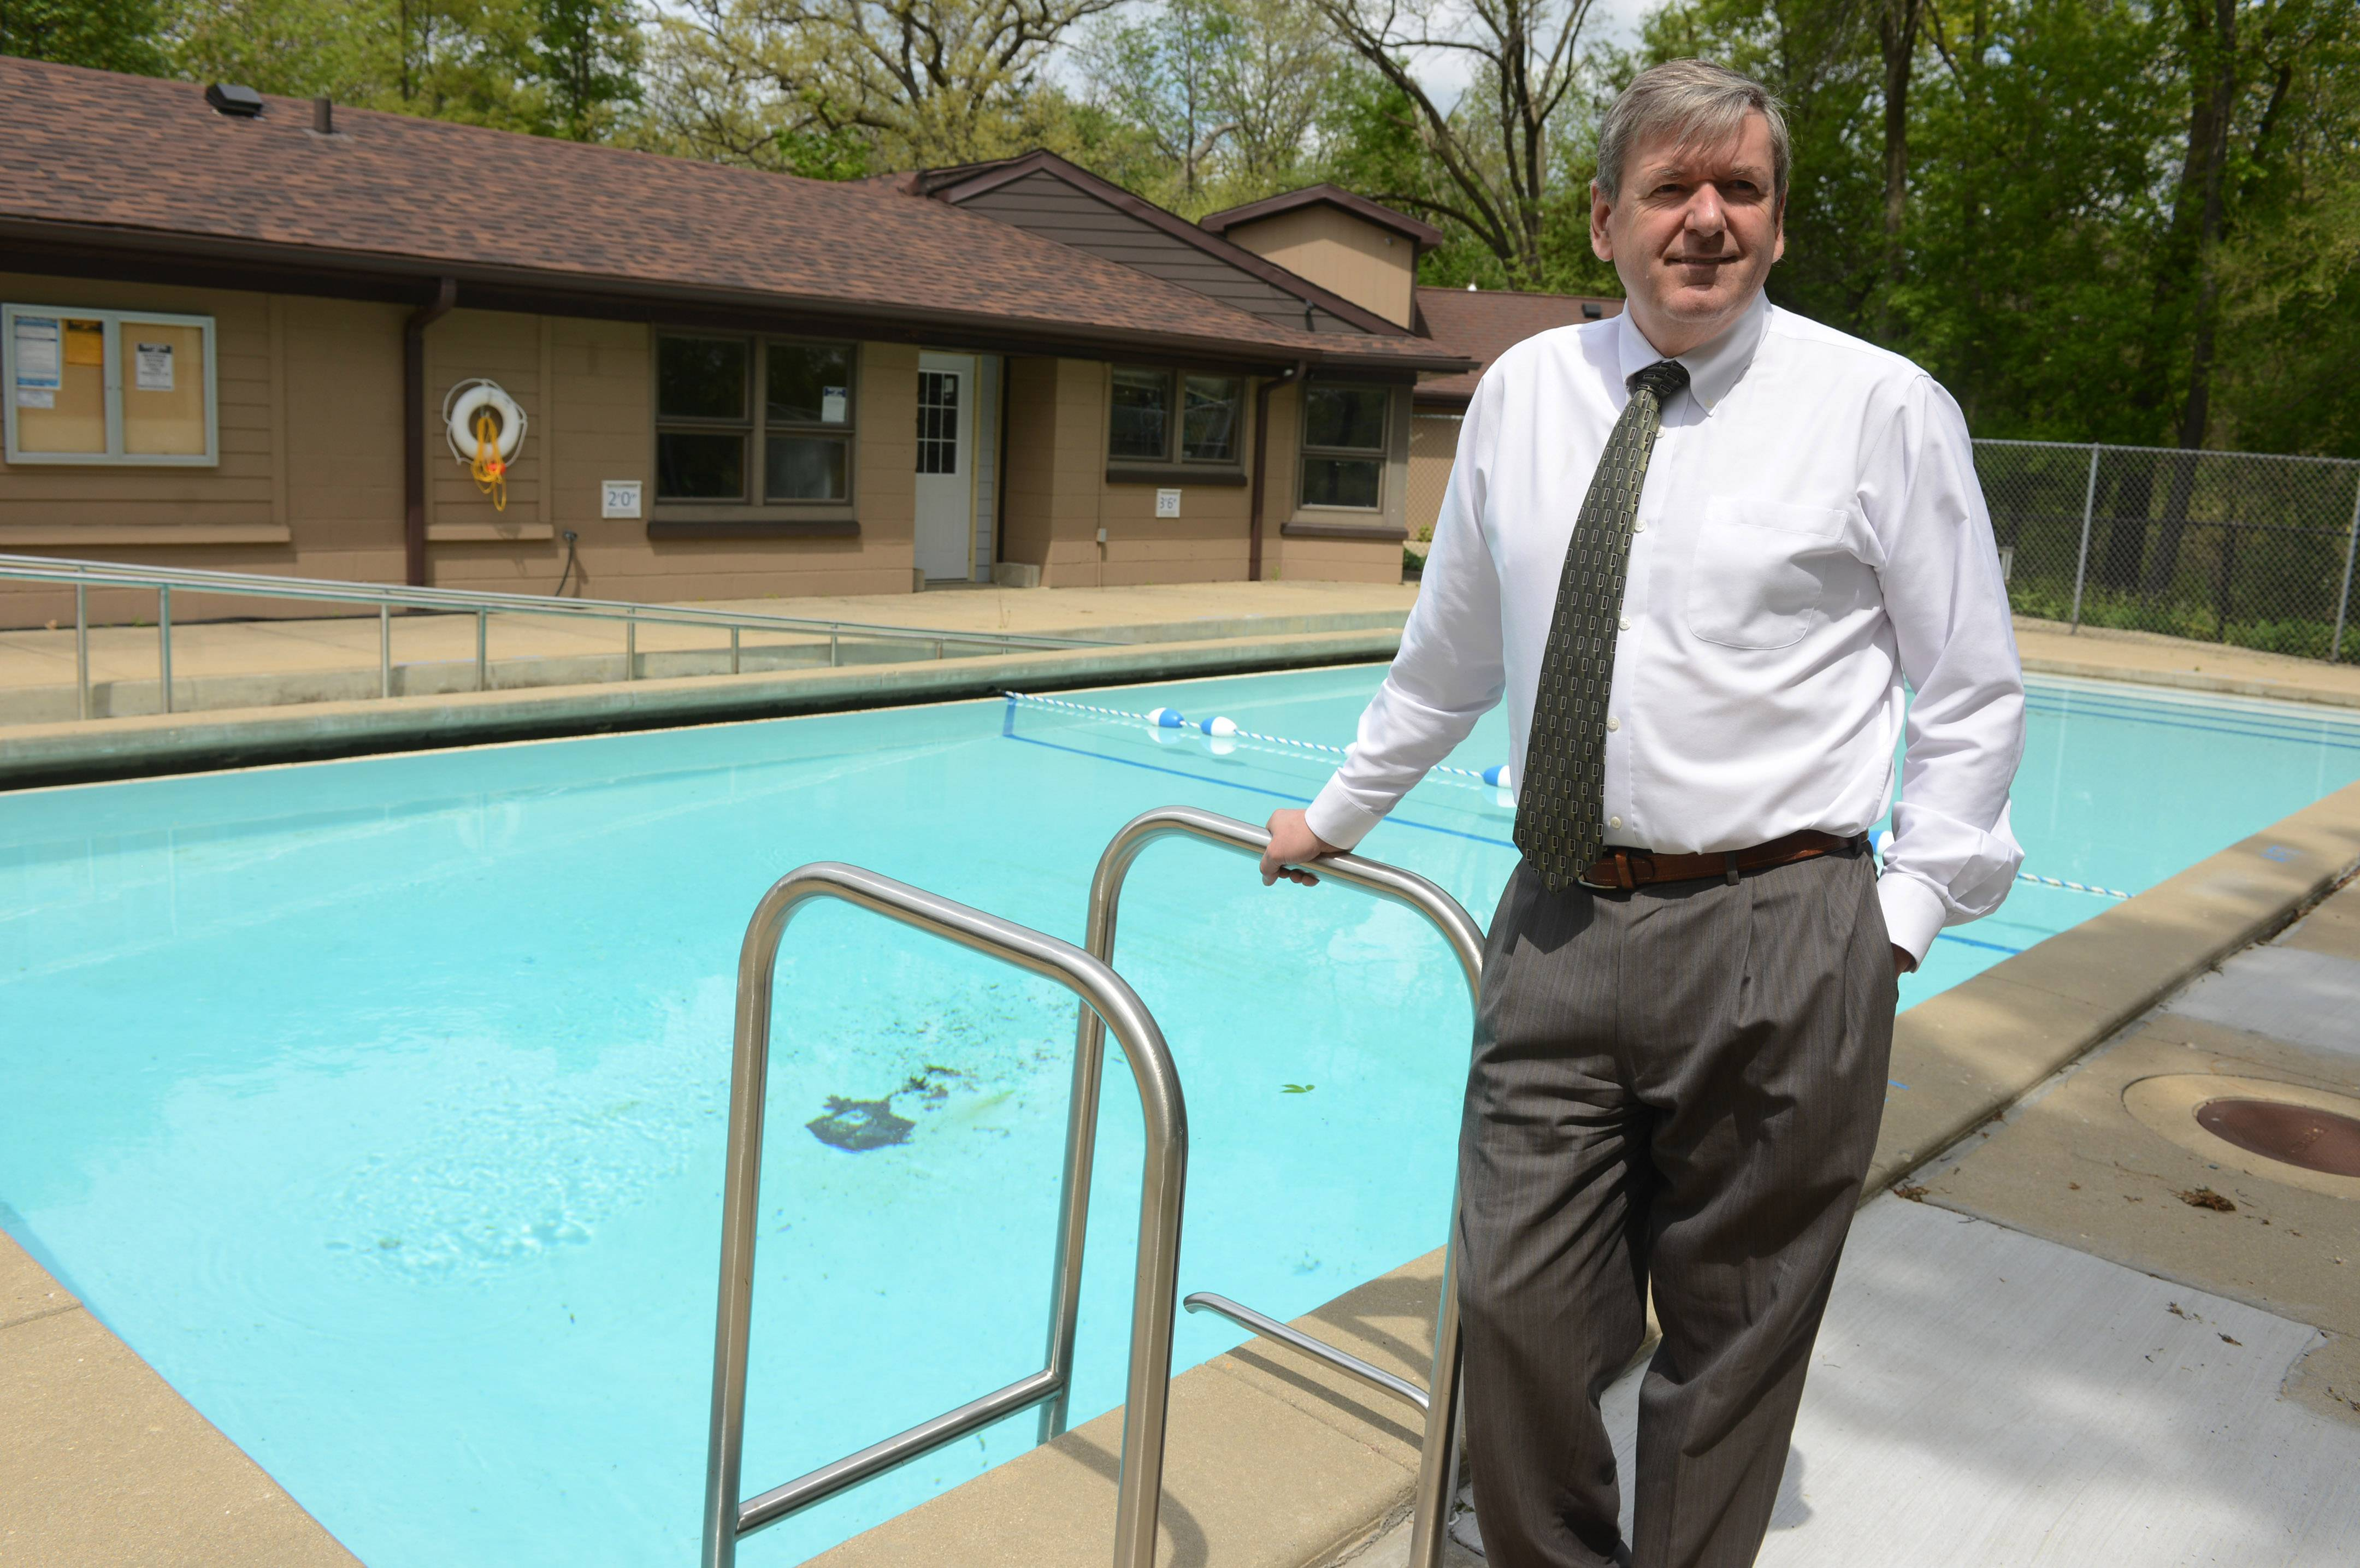 Lake Villa Township Supervisor Dan Venturi near Camp Peacock's pool, which is one of the highlights of the renovated facility.